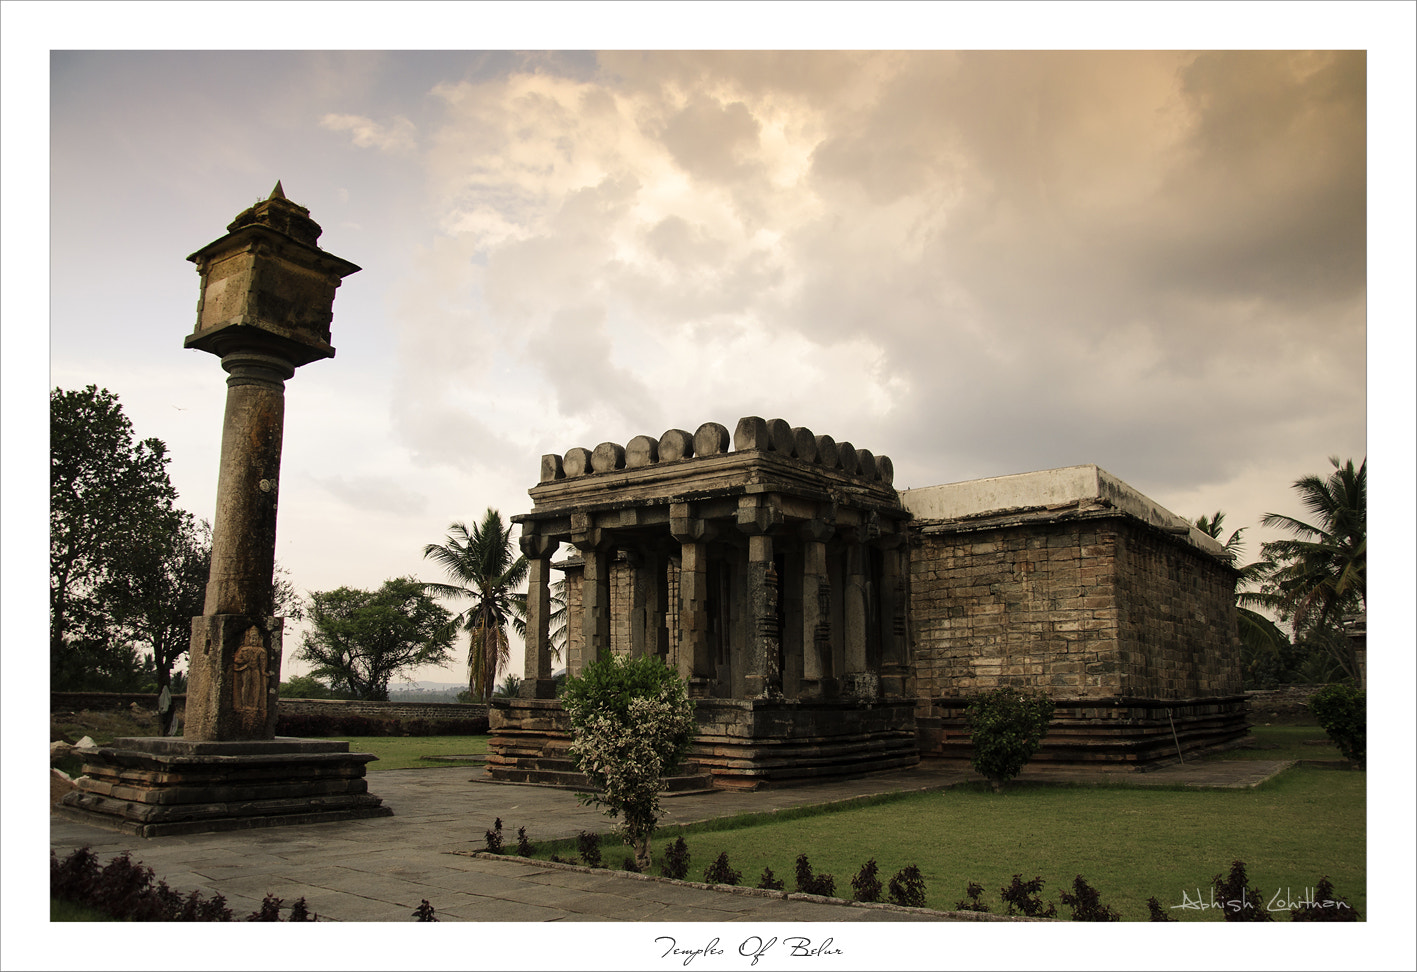 Photograph Temples of Belur by Abhish Lohithan on 500px